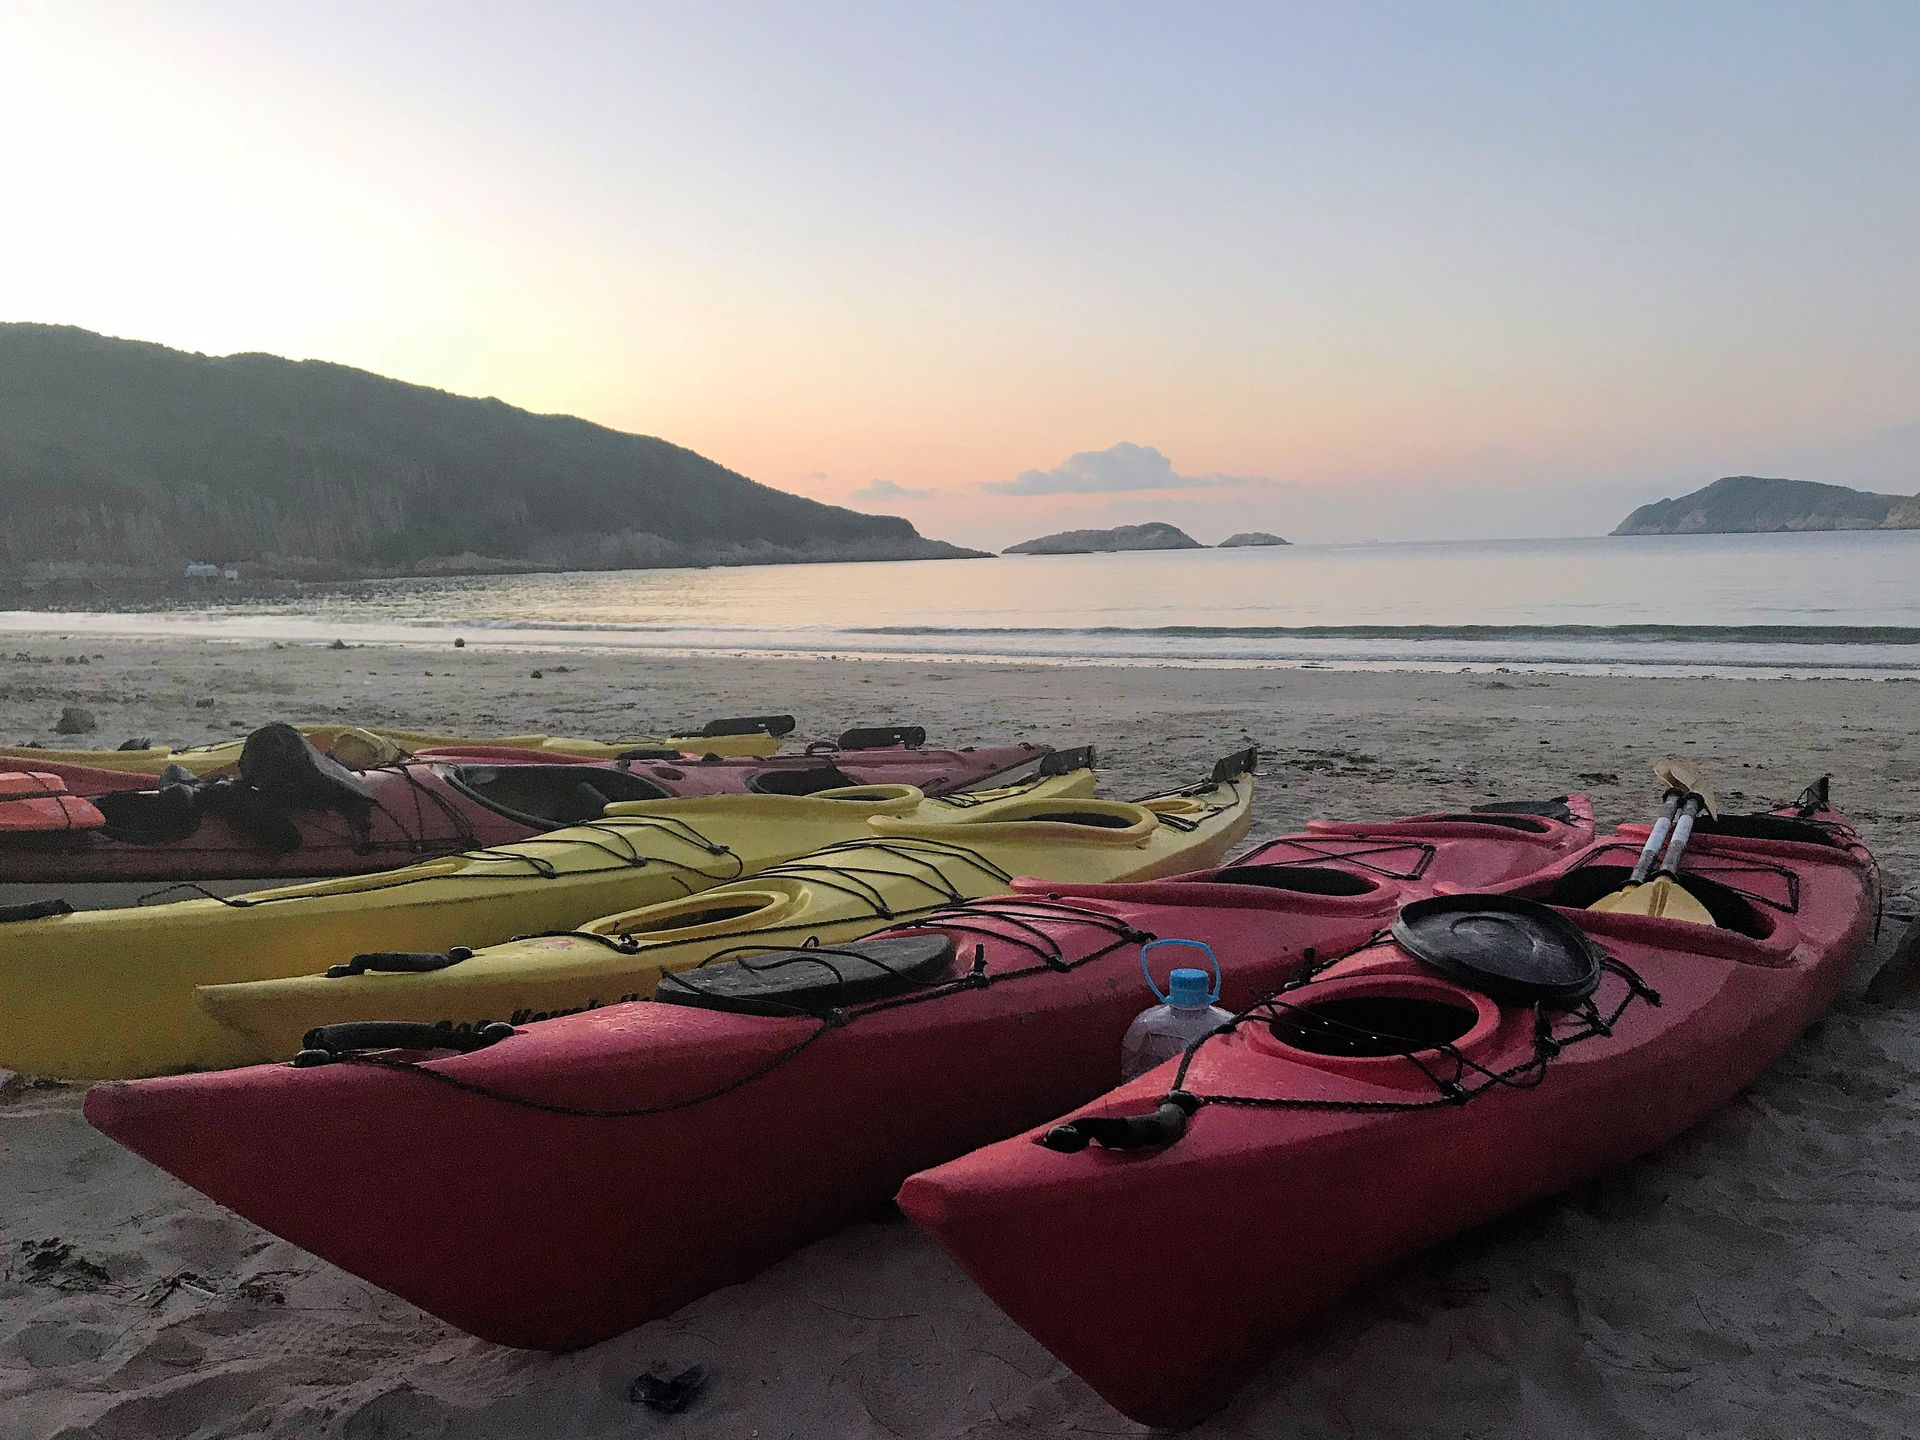 Sea Kayak Hong Kong 2018 Jul 28 UNESCO Geopark_12